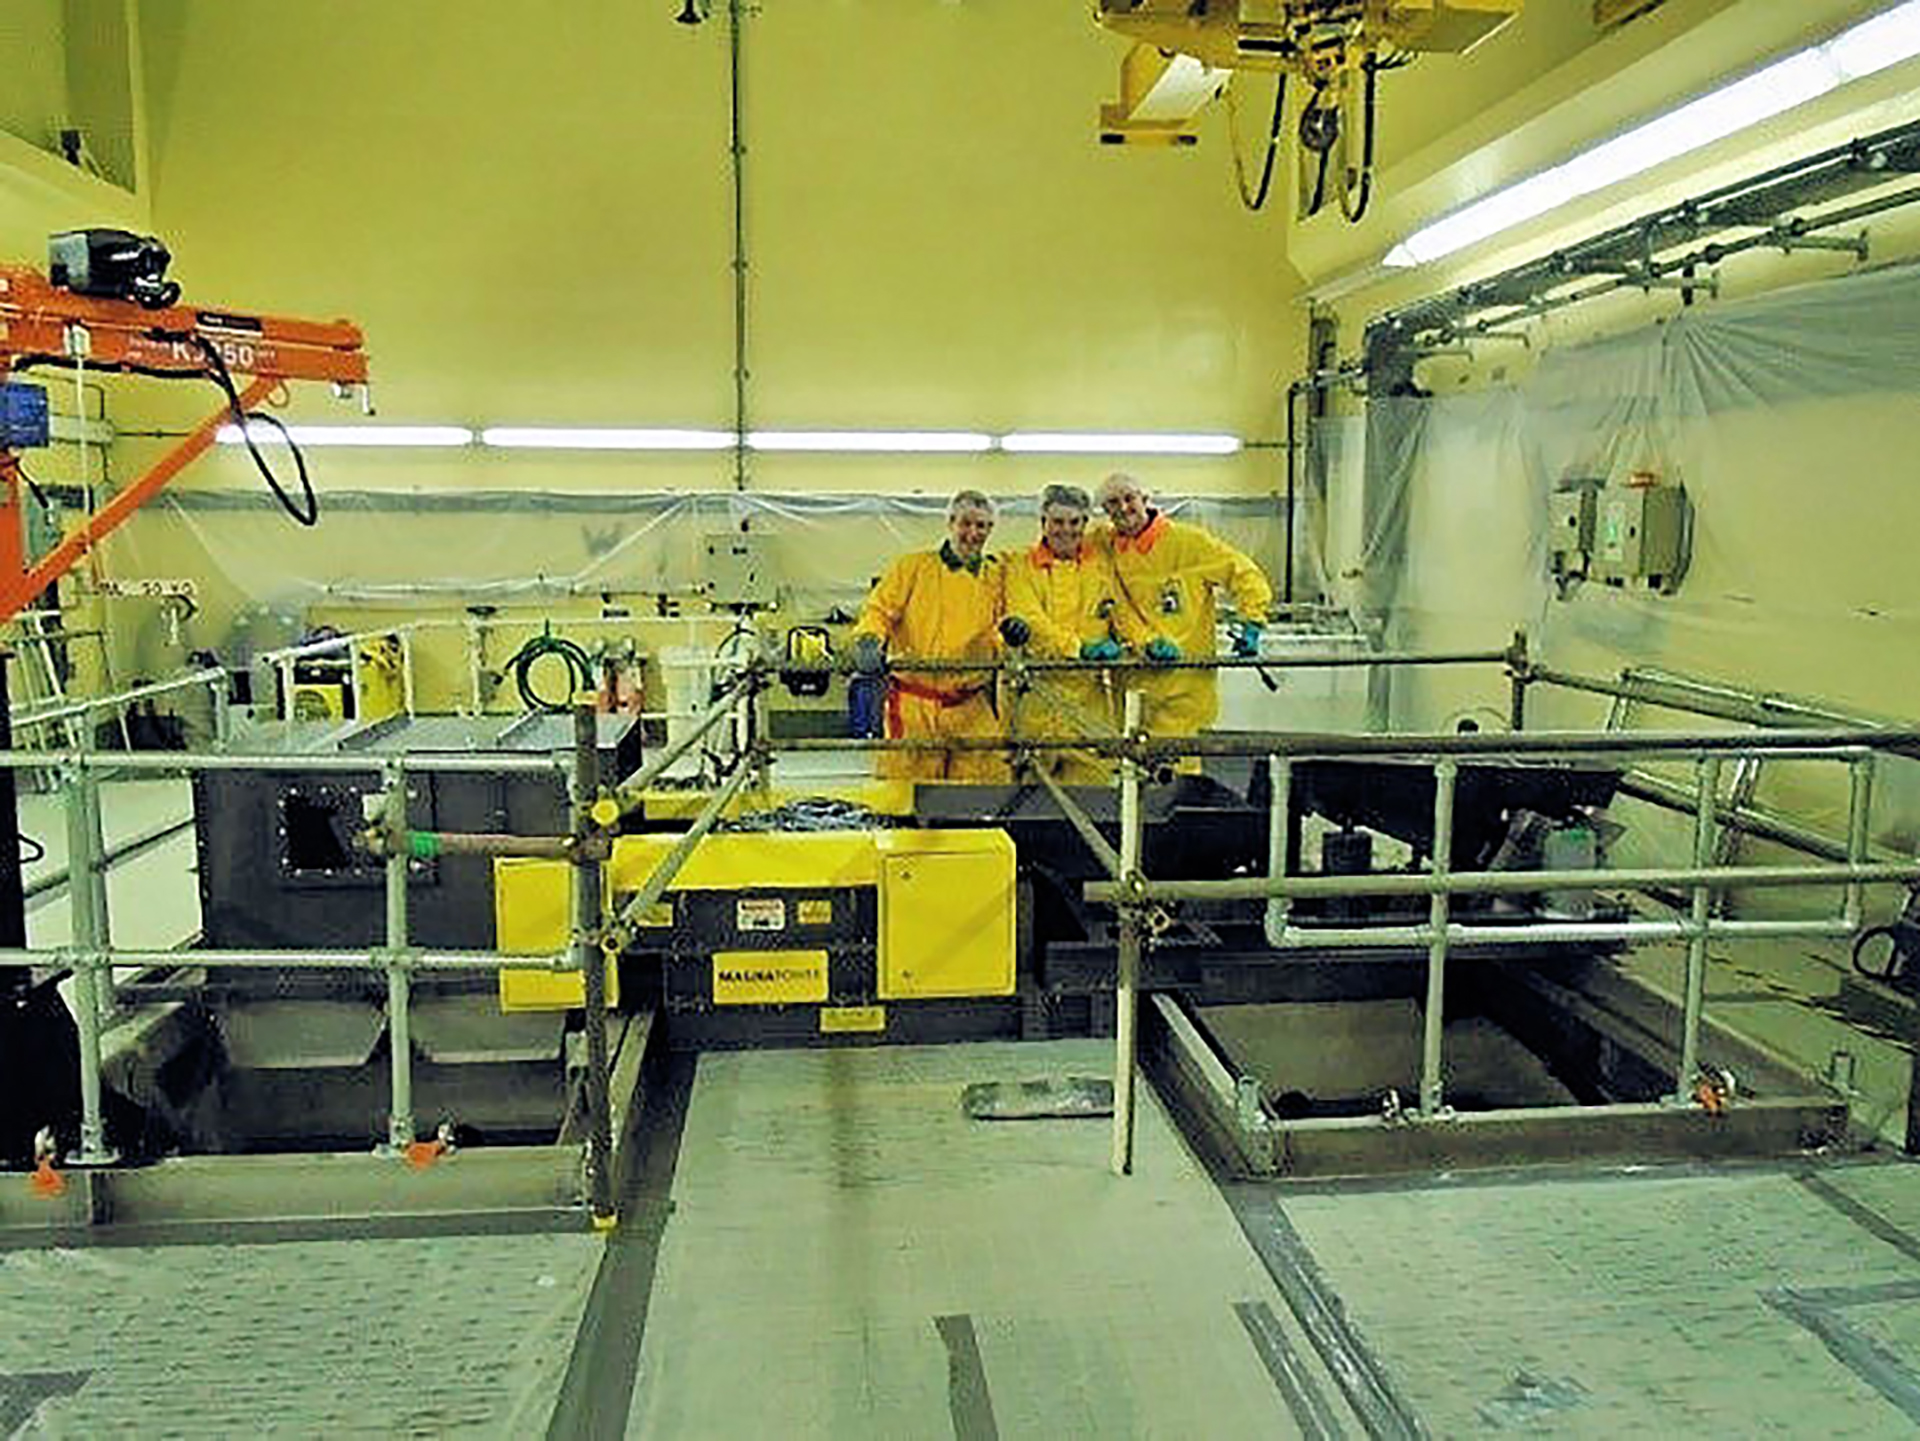 Magnapower ECS in nuclear waste decommissioning plant - Magnapower